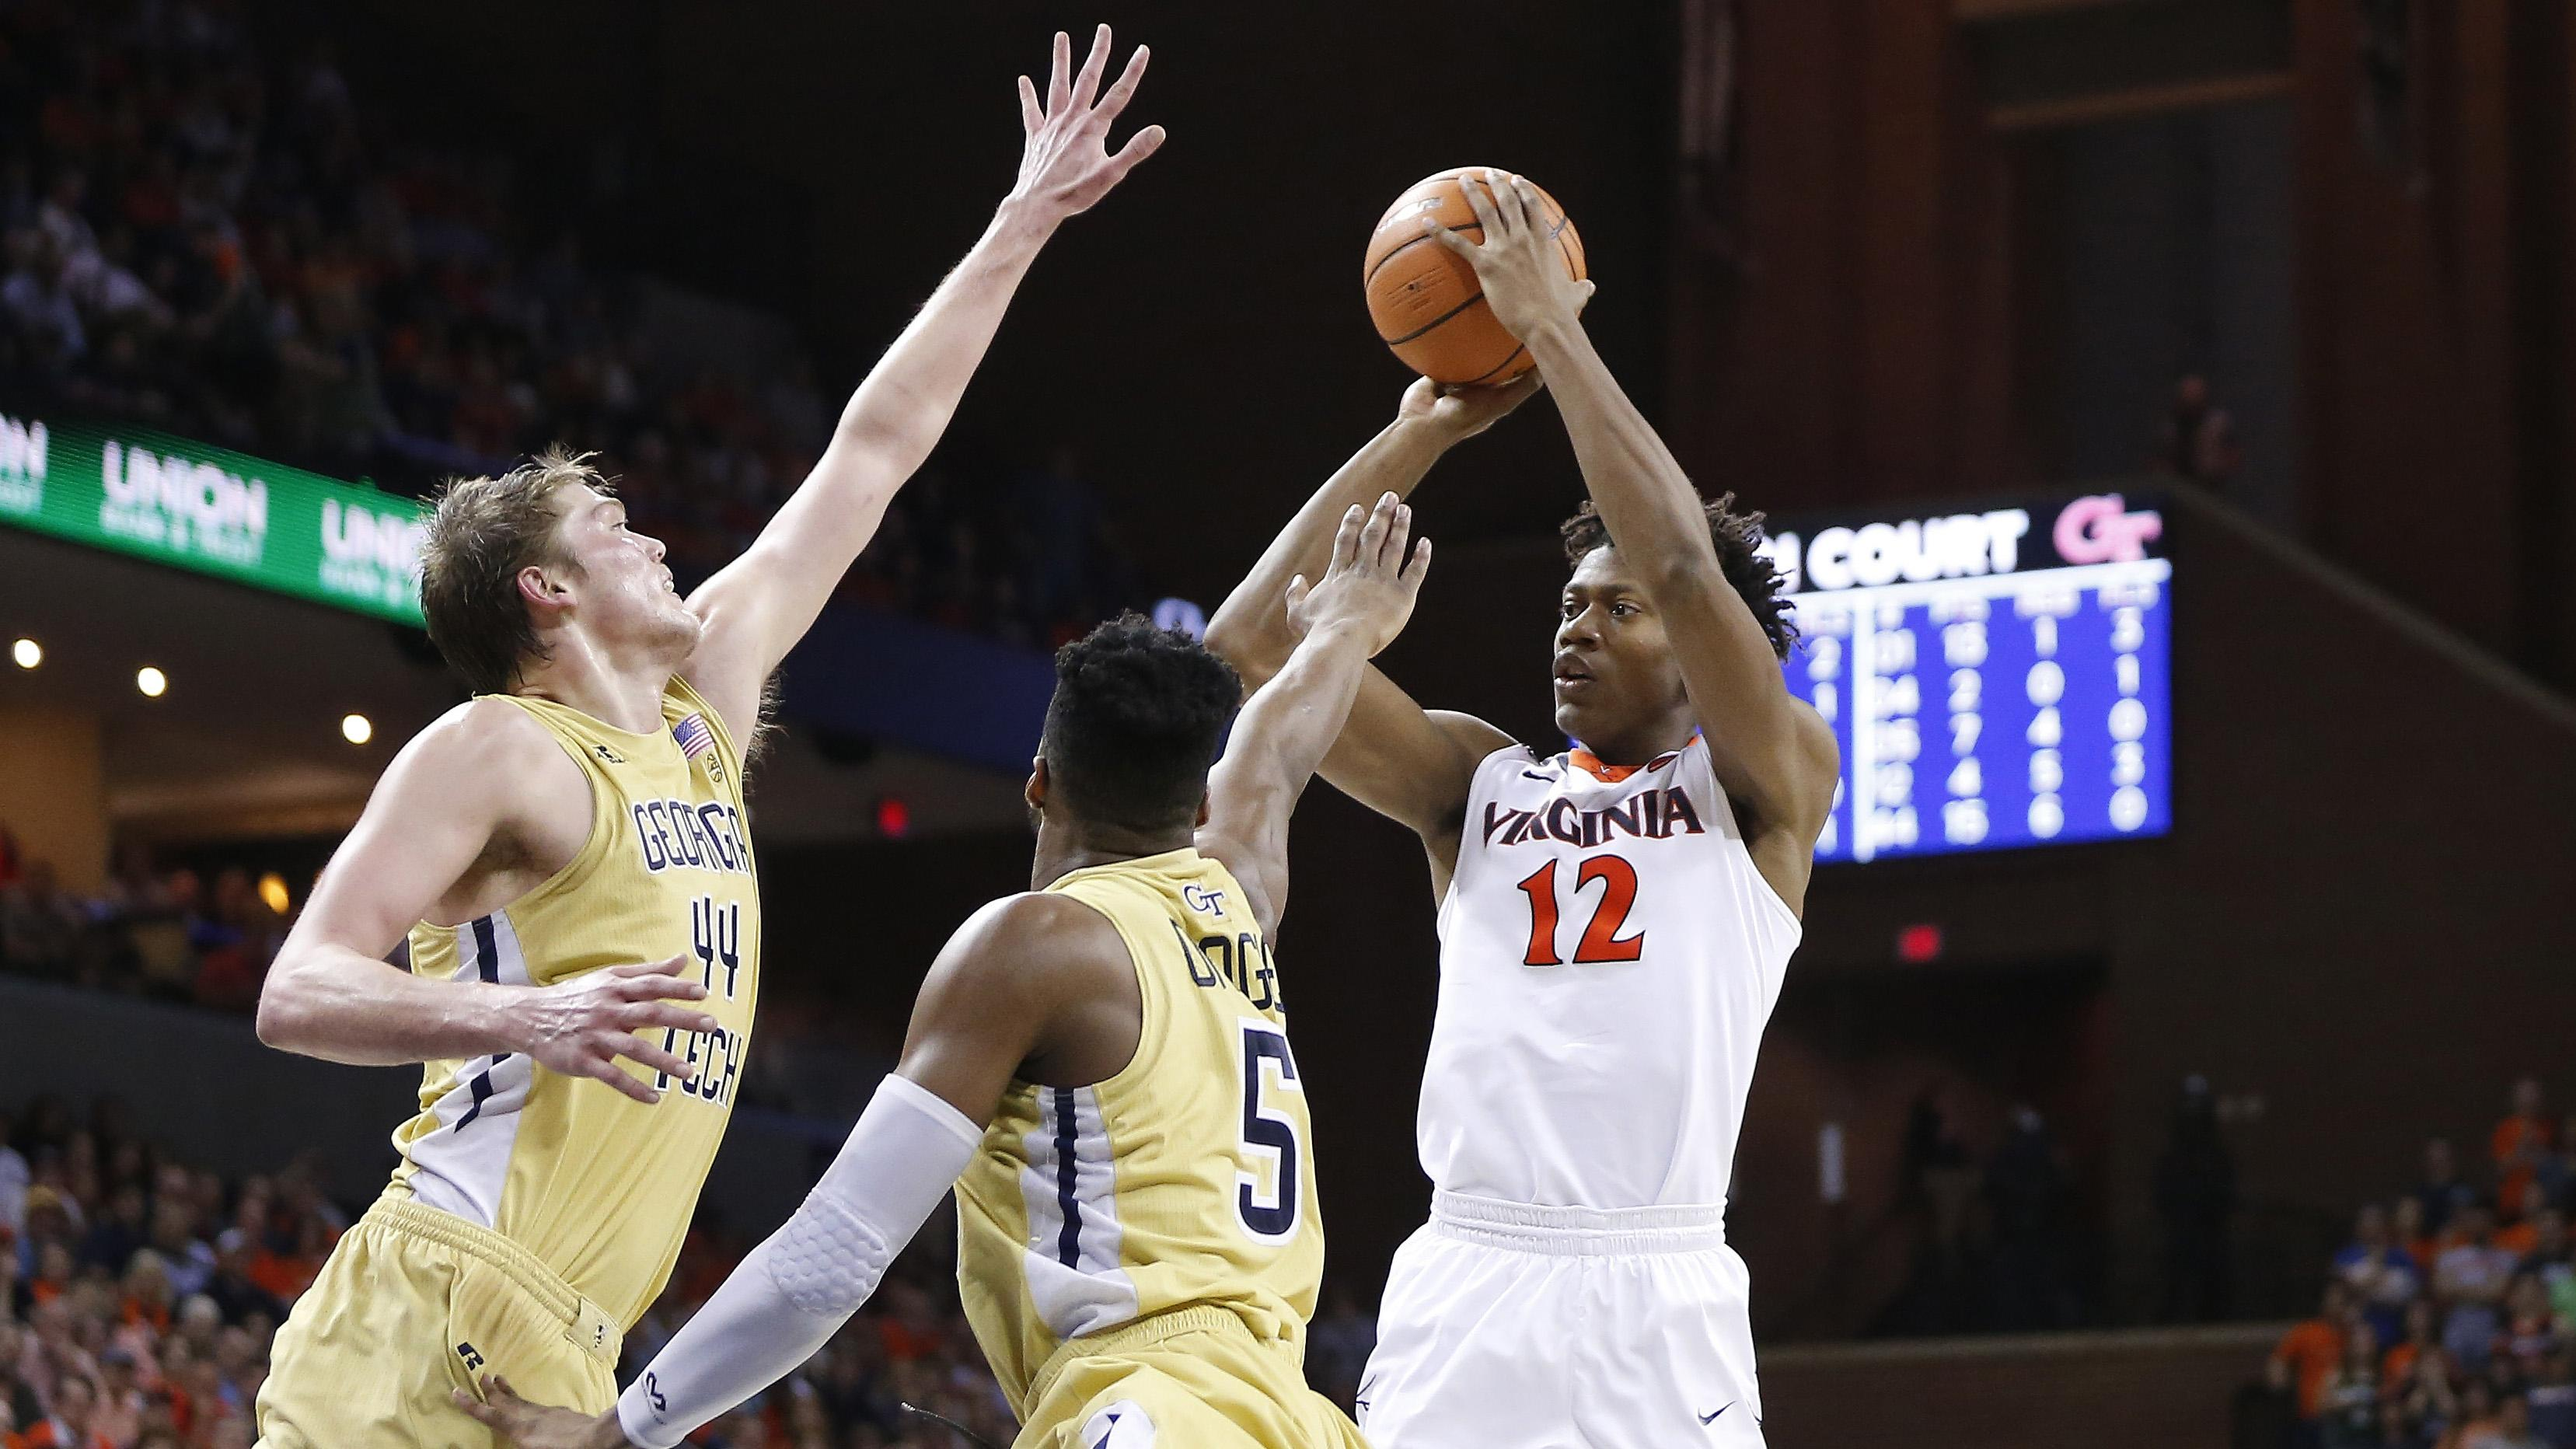 Virginia's De'Andre Hunter shoots against Georgia Tech